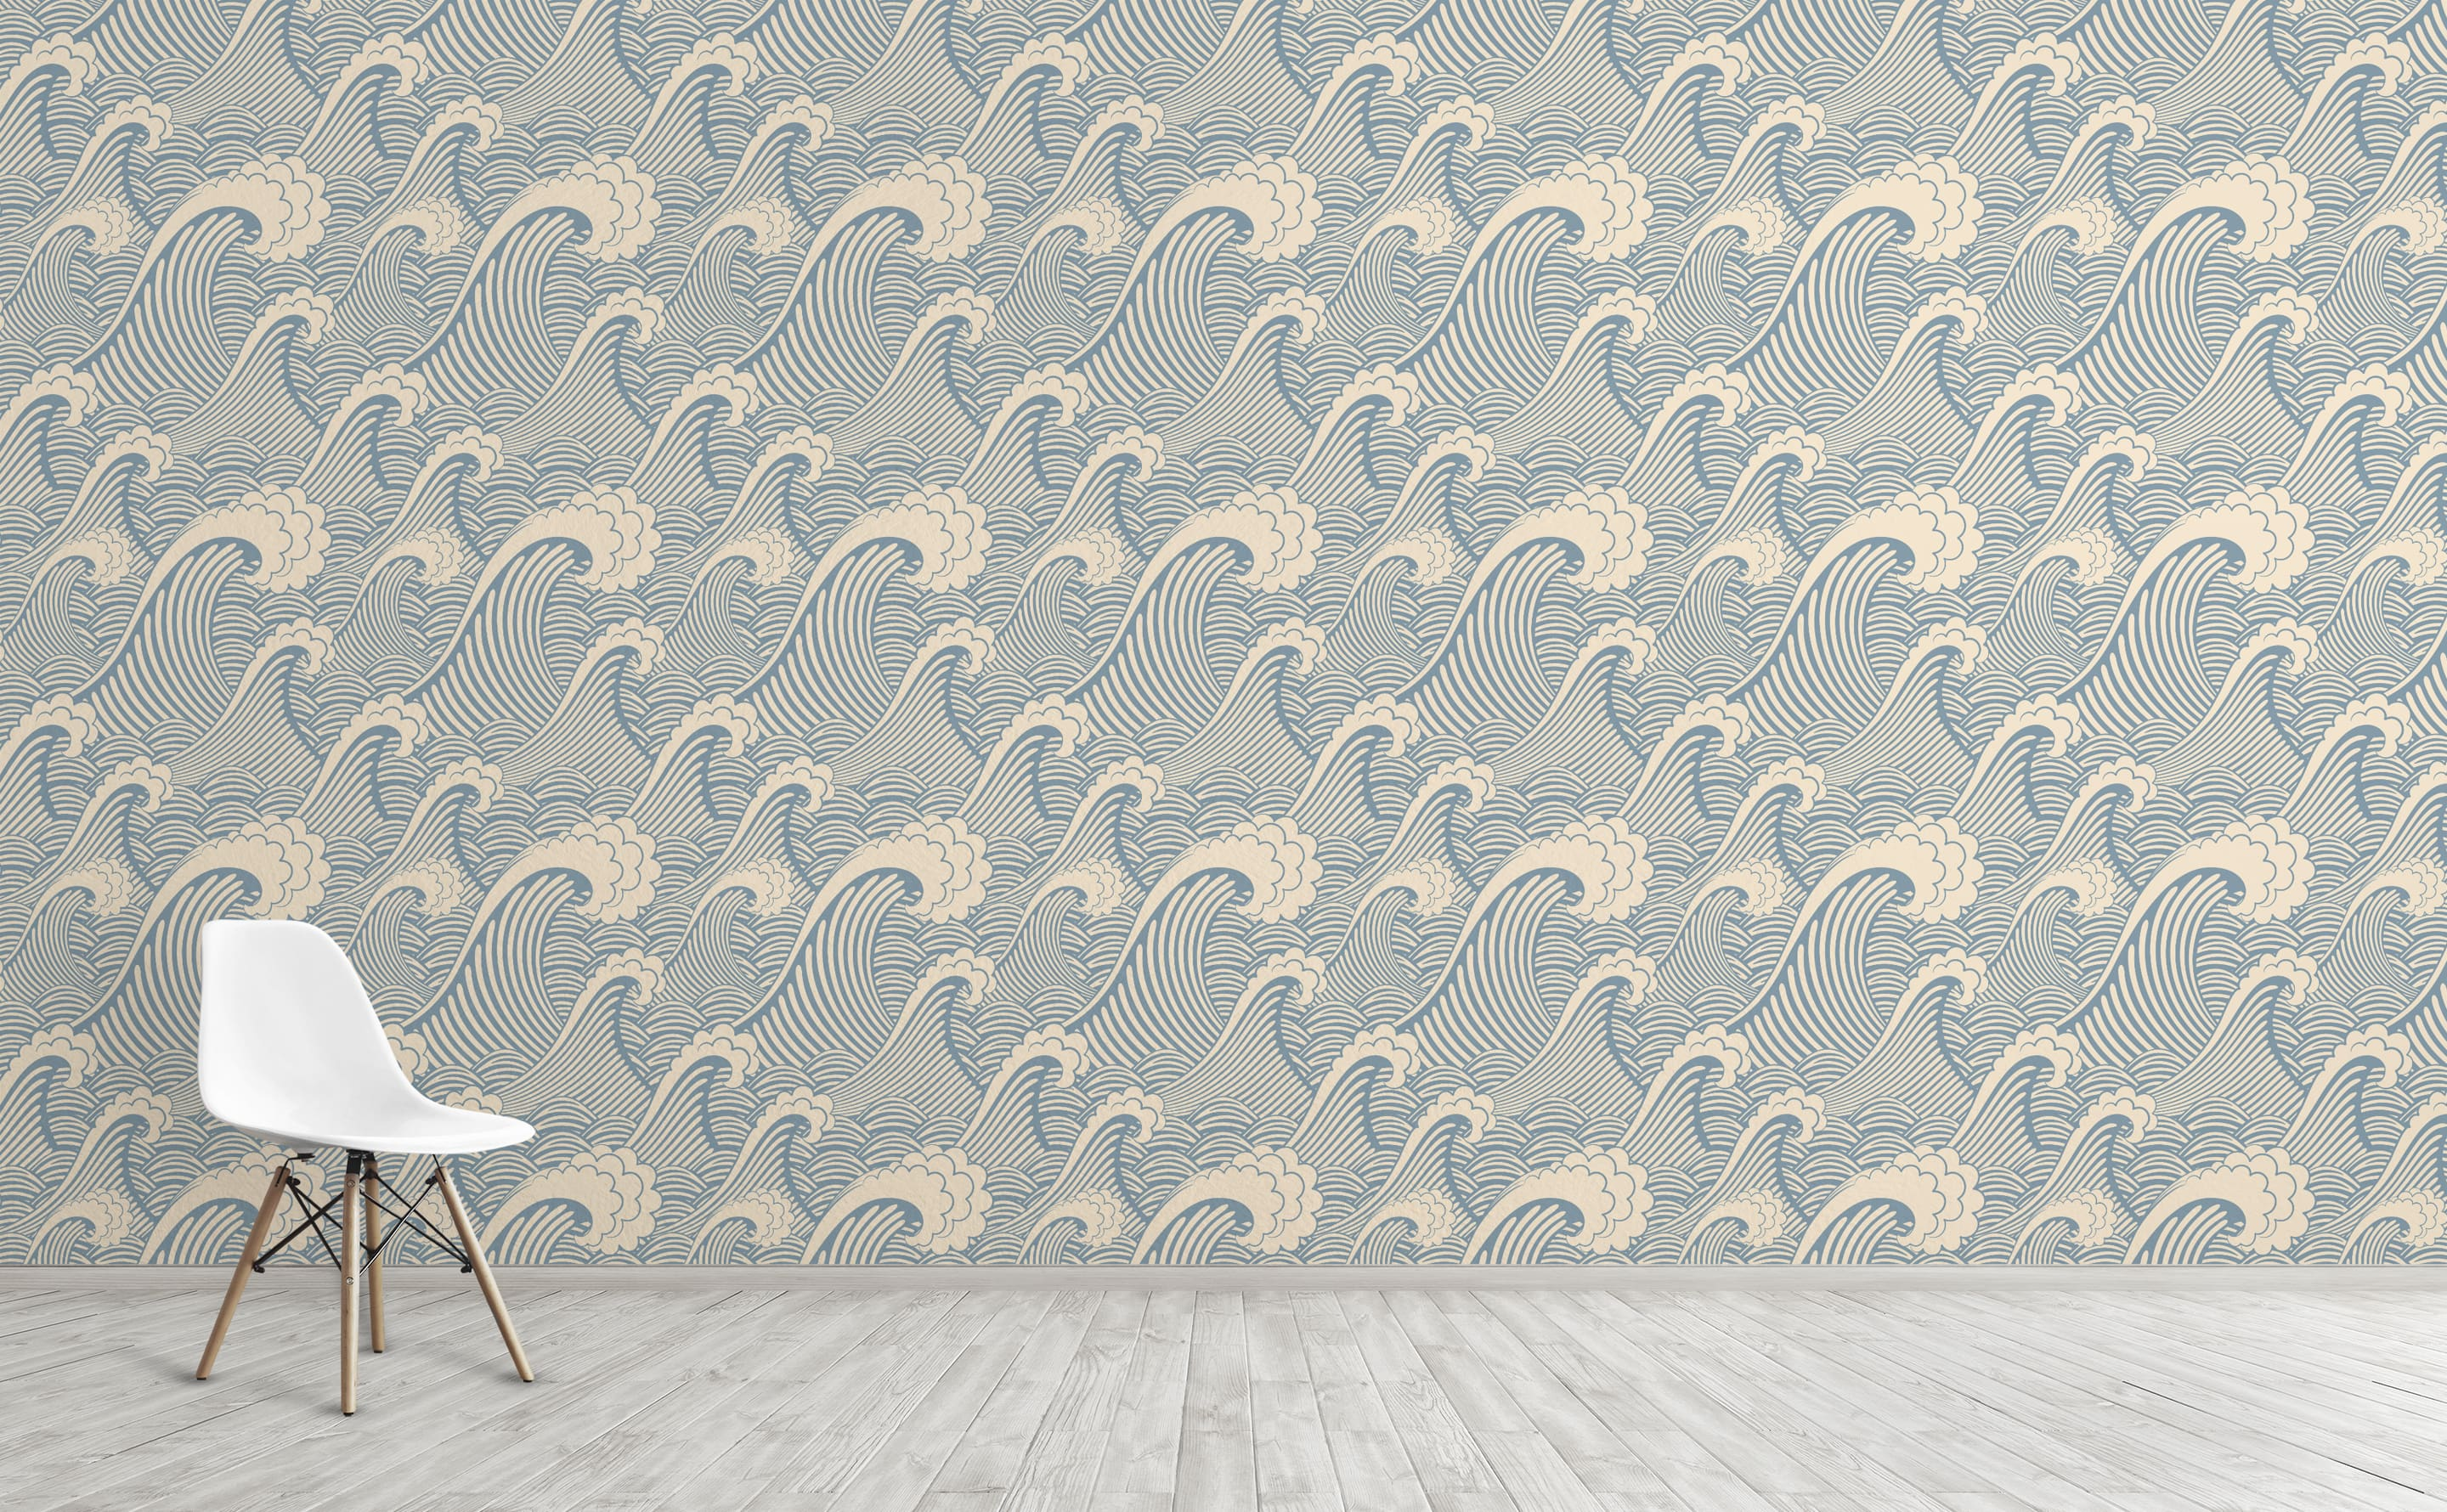 w0263 1s Nautical Waves Wallpaper for Walls Waves of Chic For Interior Walls 1